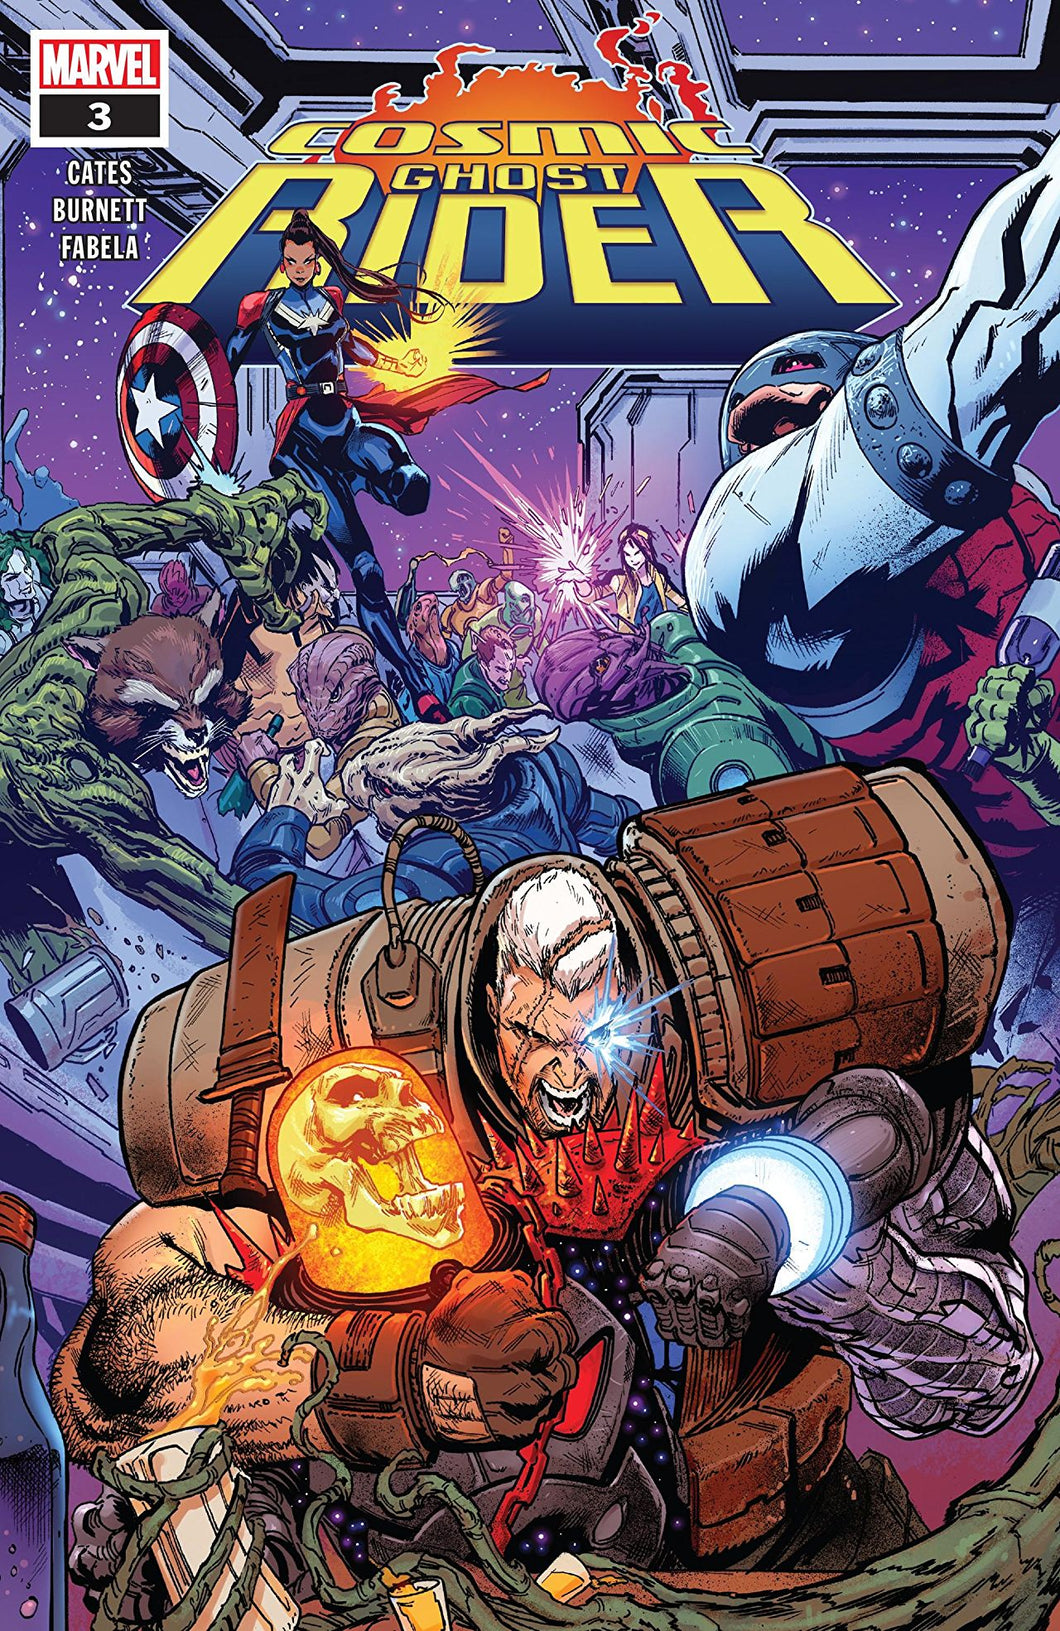 COSMIC GHOST RIDER #3 (OF 5) (09/05/2018)